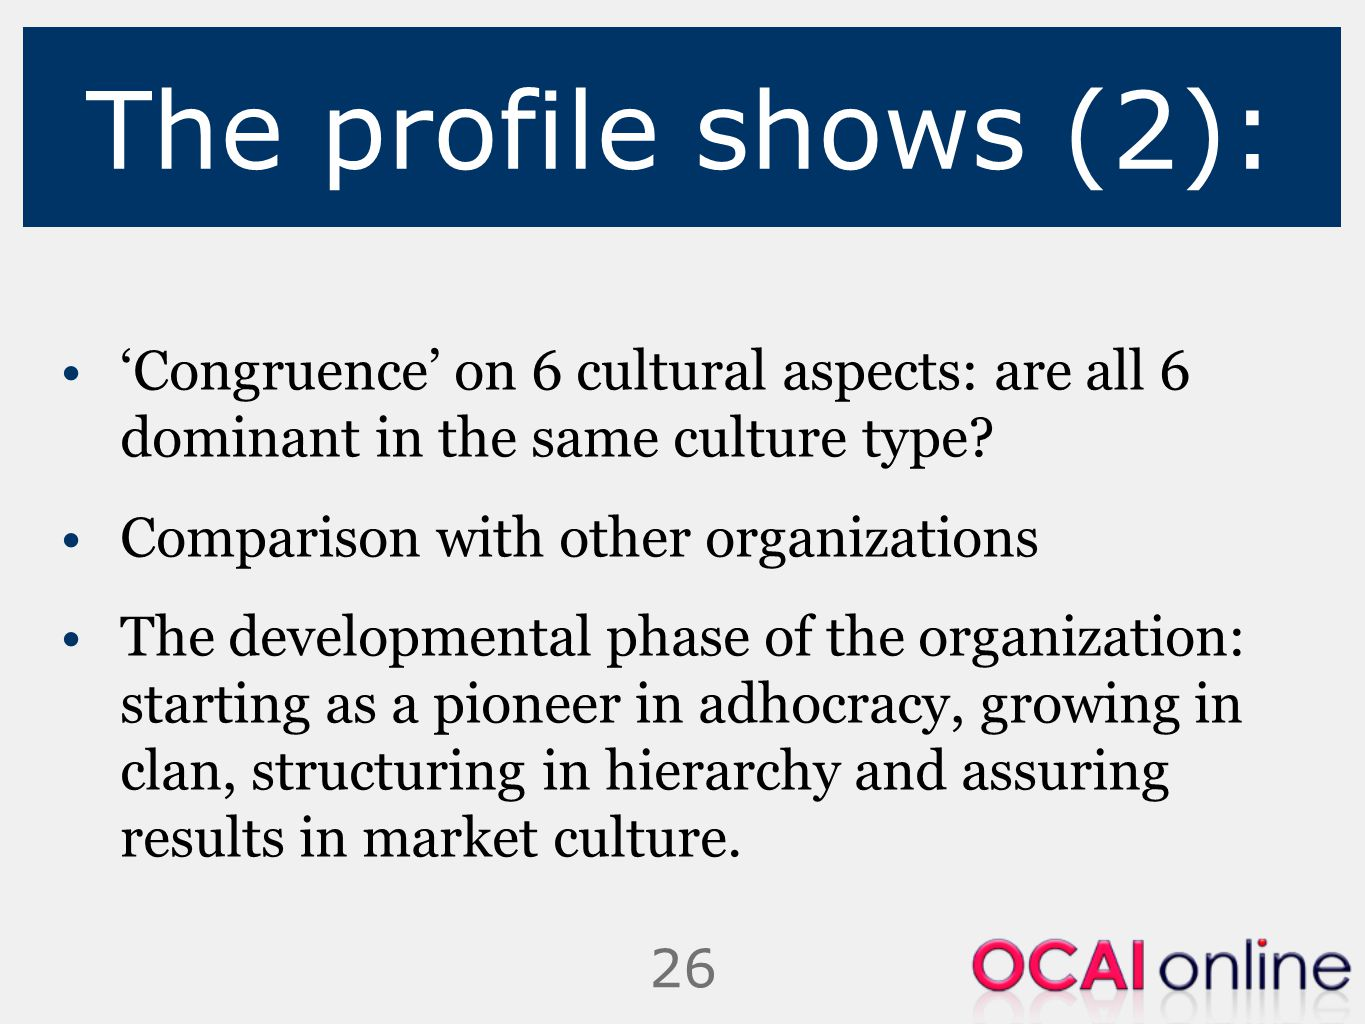 The profile shows (2): 'Congruence' on 6 cultural aspects: are all 6 dominant in the same culture type